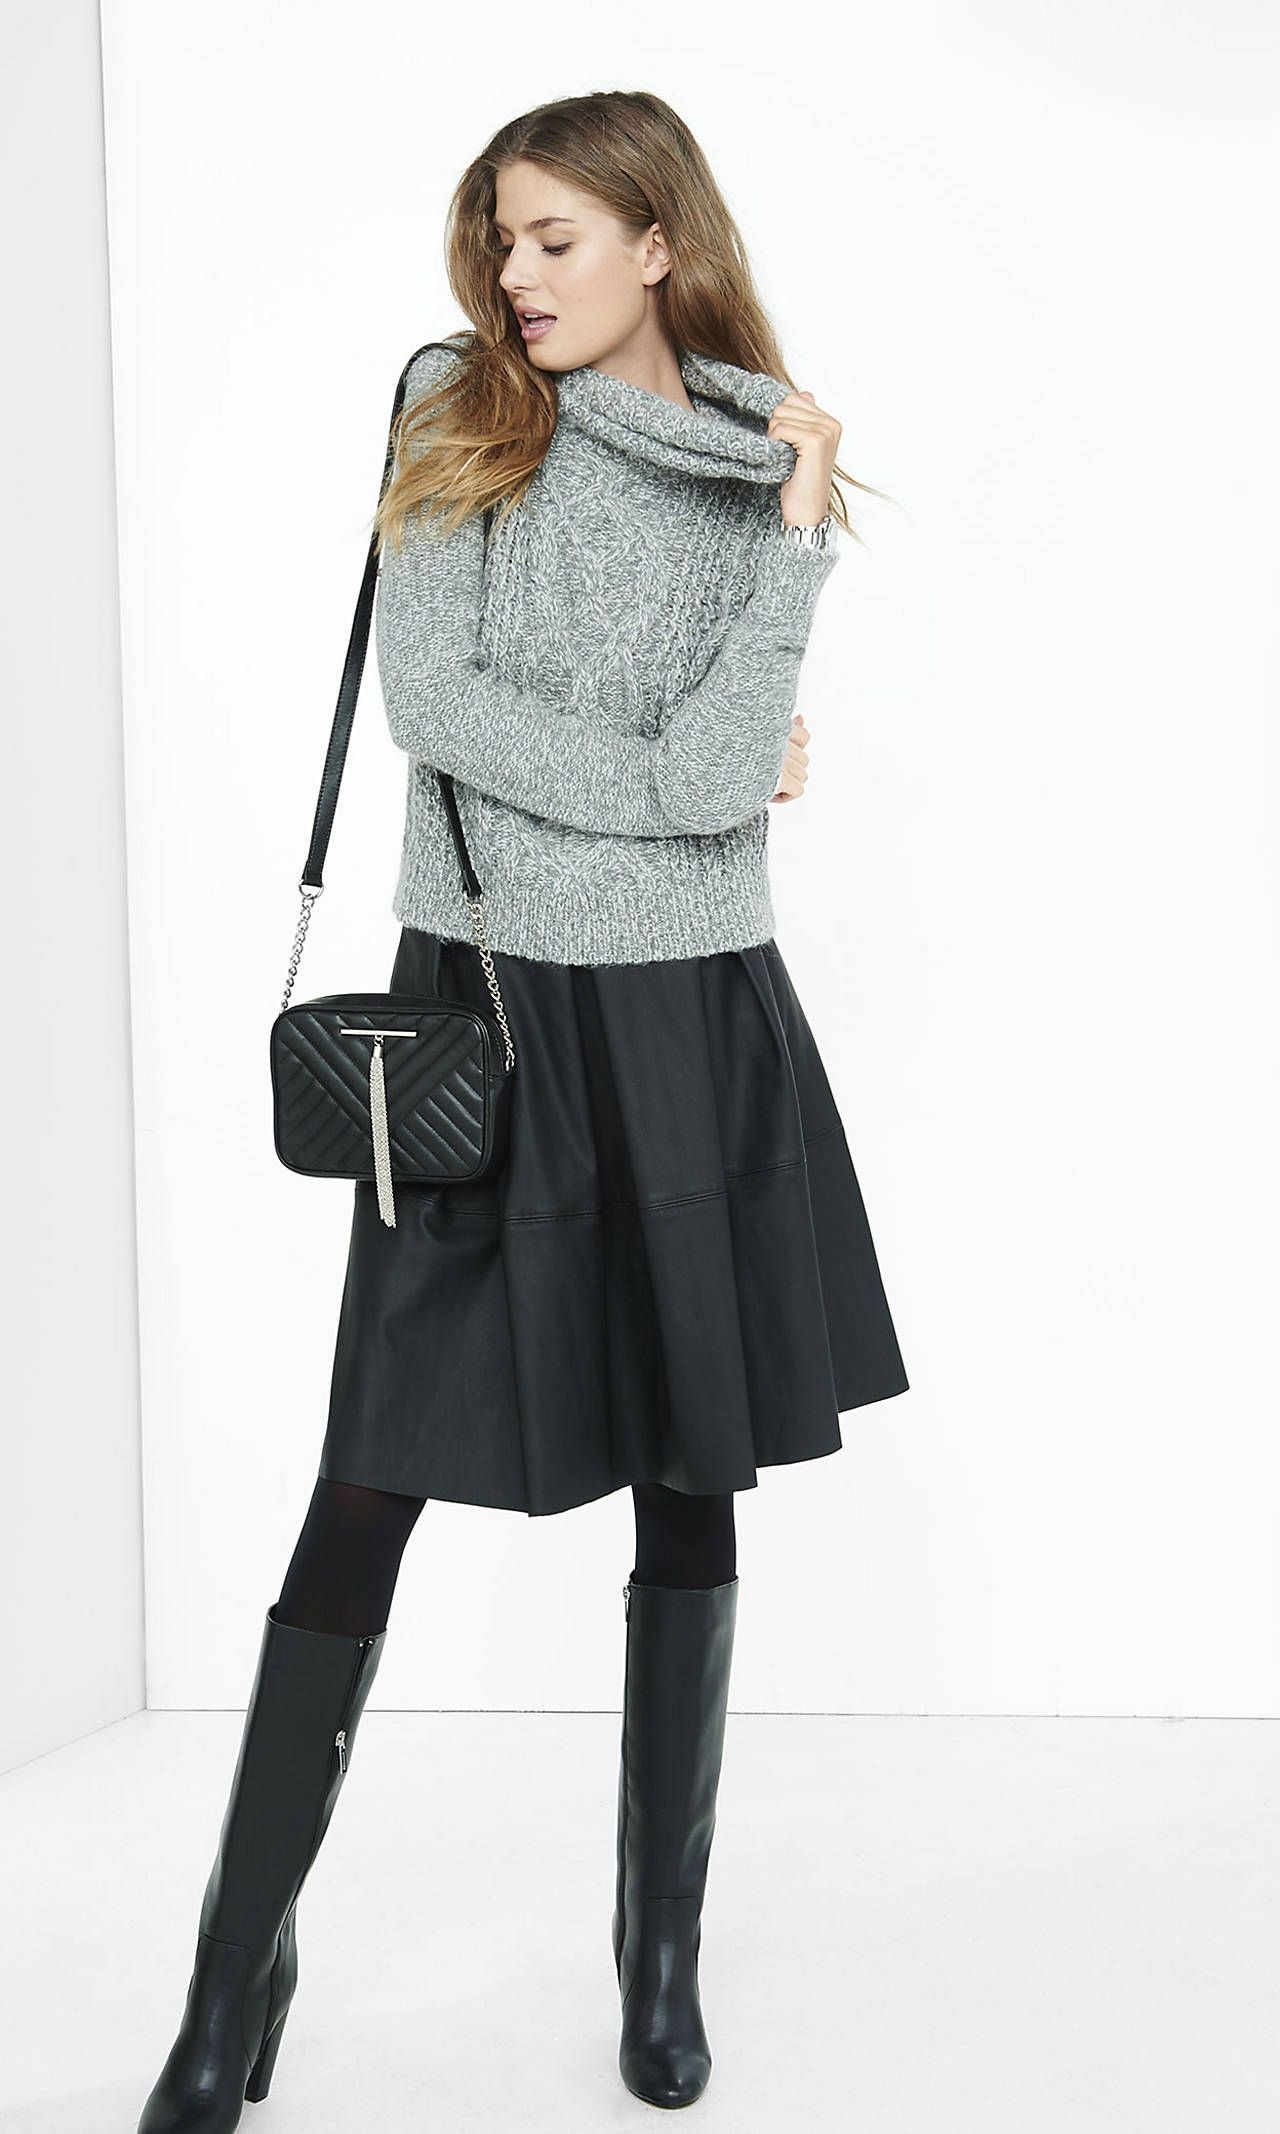 Marl Cowl Neck Cable Knit Sweater Women Sweaters Winter Express Outfits Cable Knit Sweaters